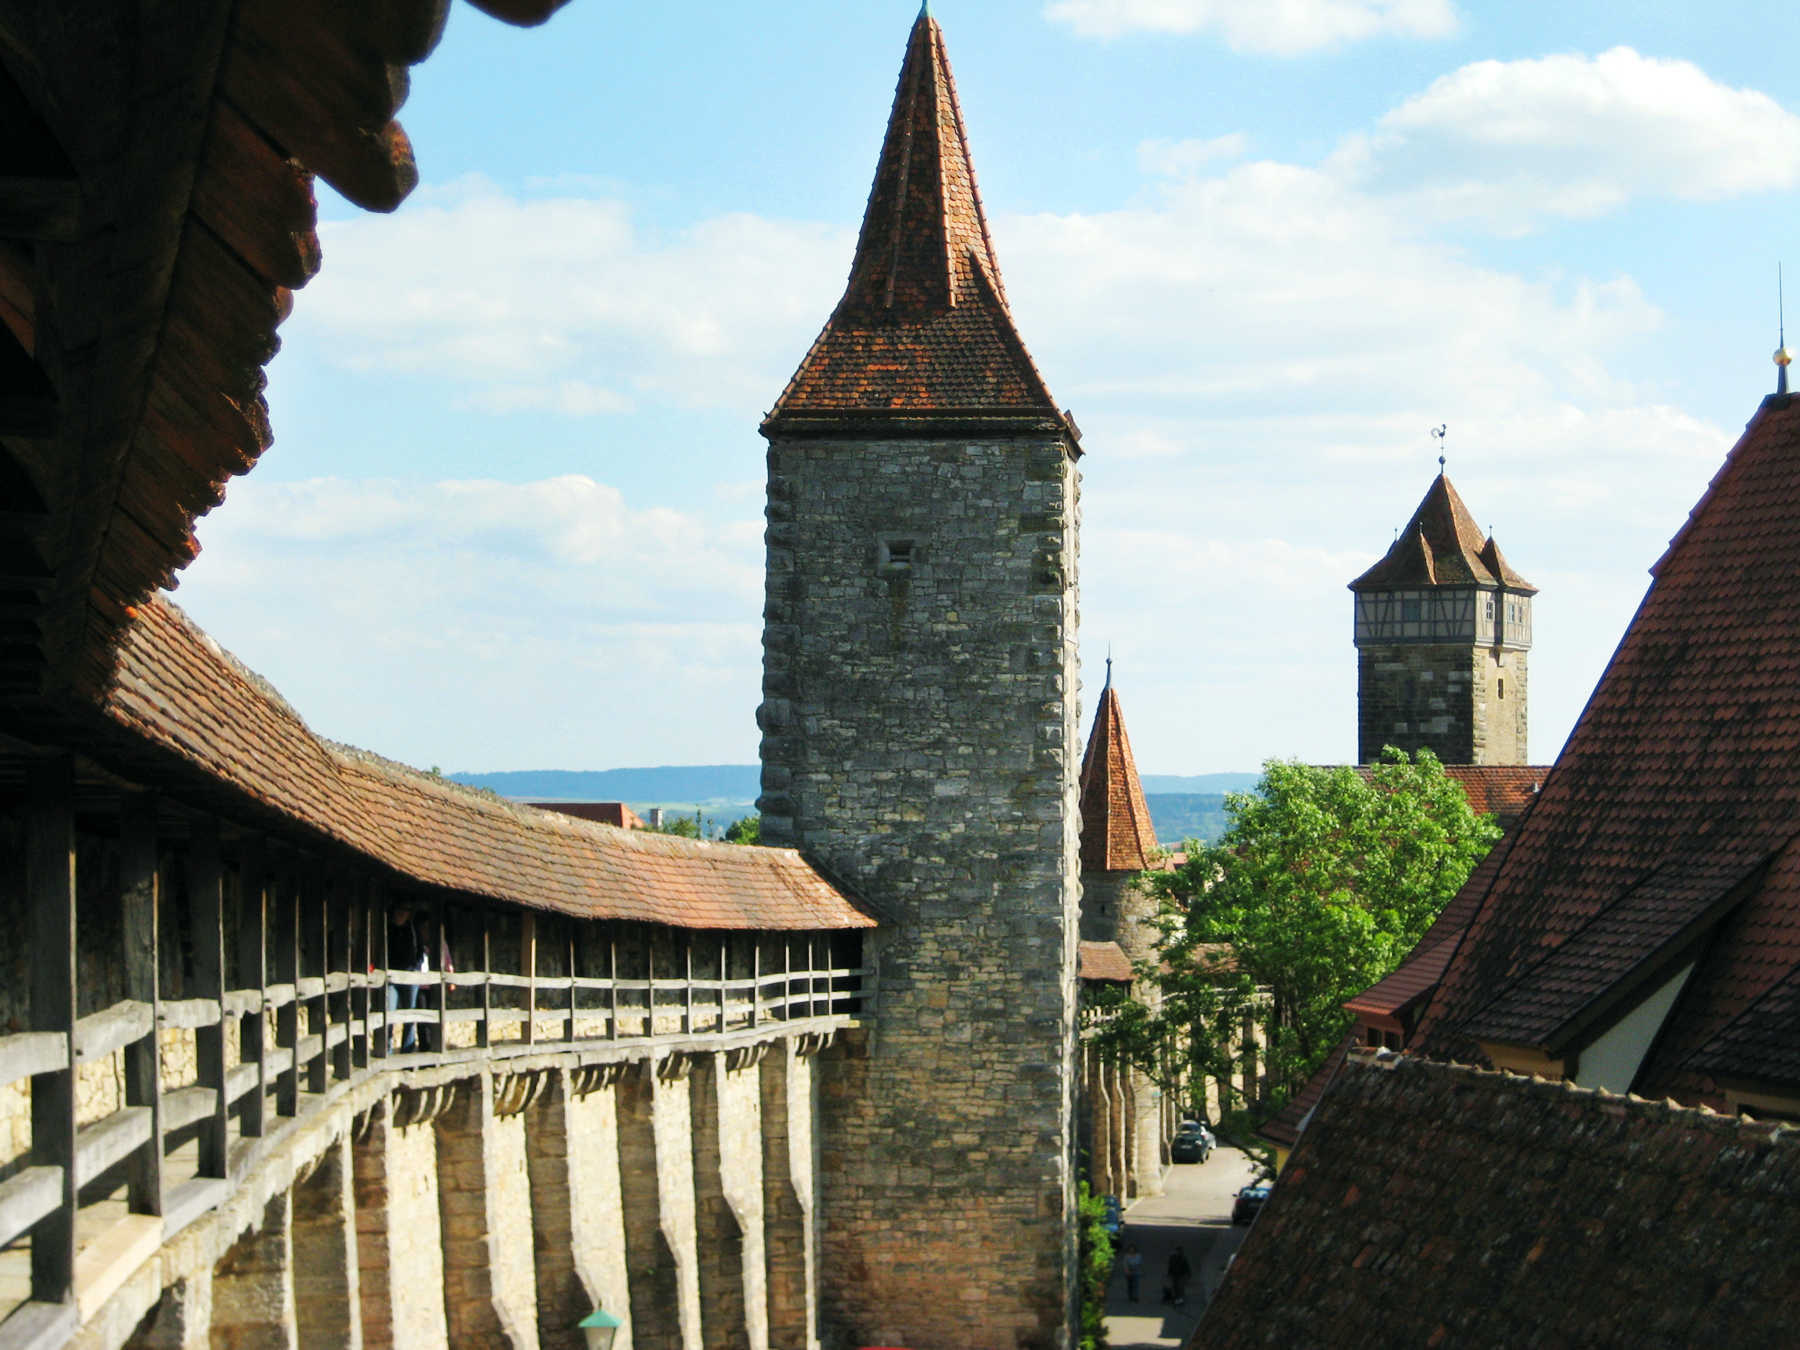 City Wall, Rothenburg ob der tauber, Germany